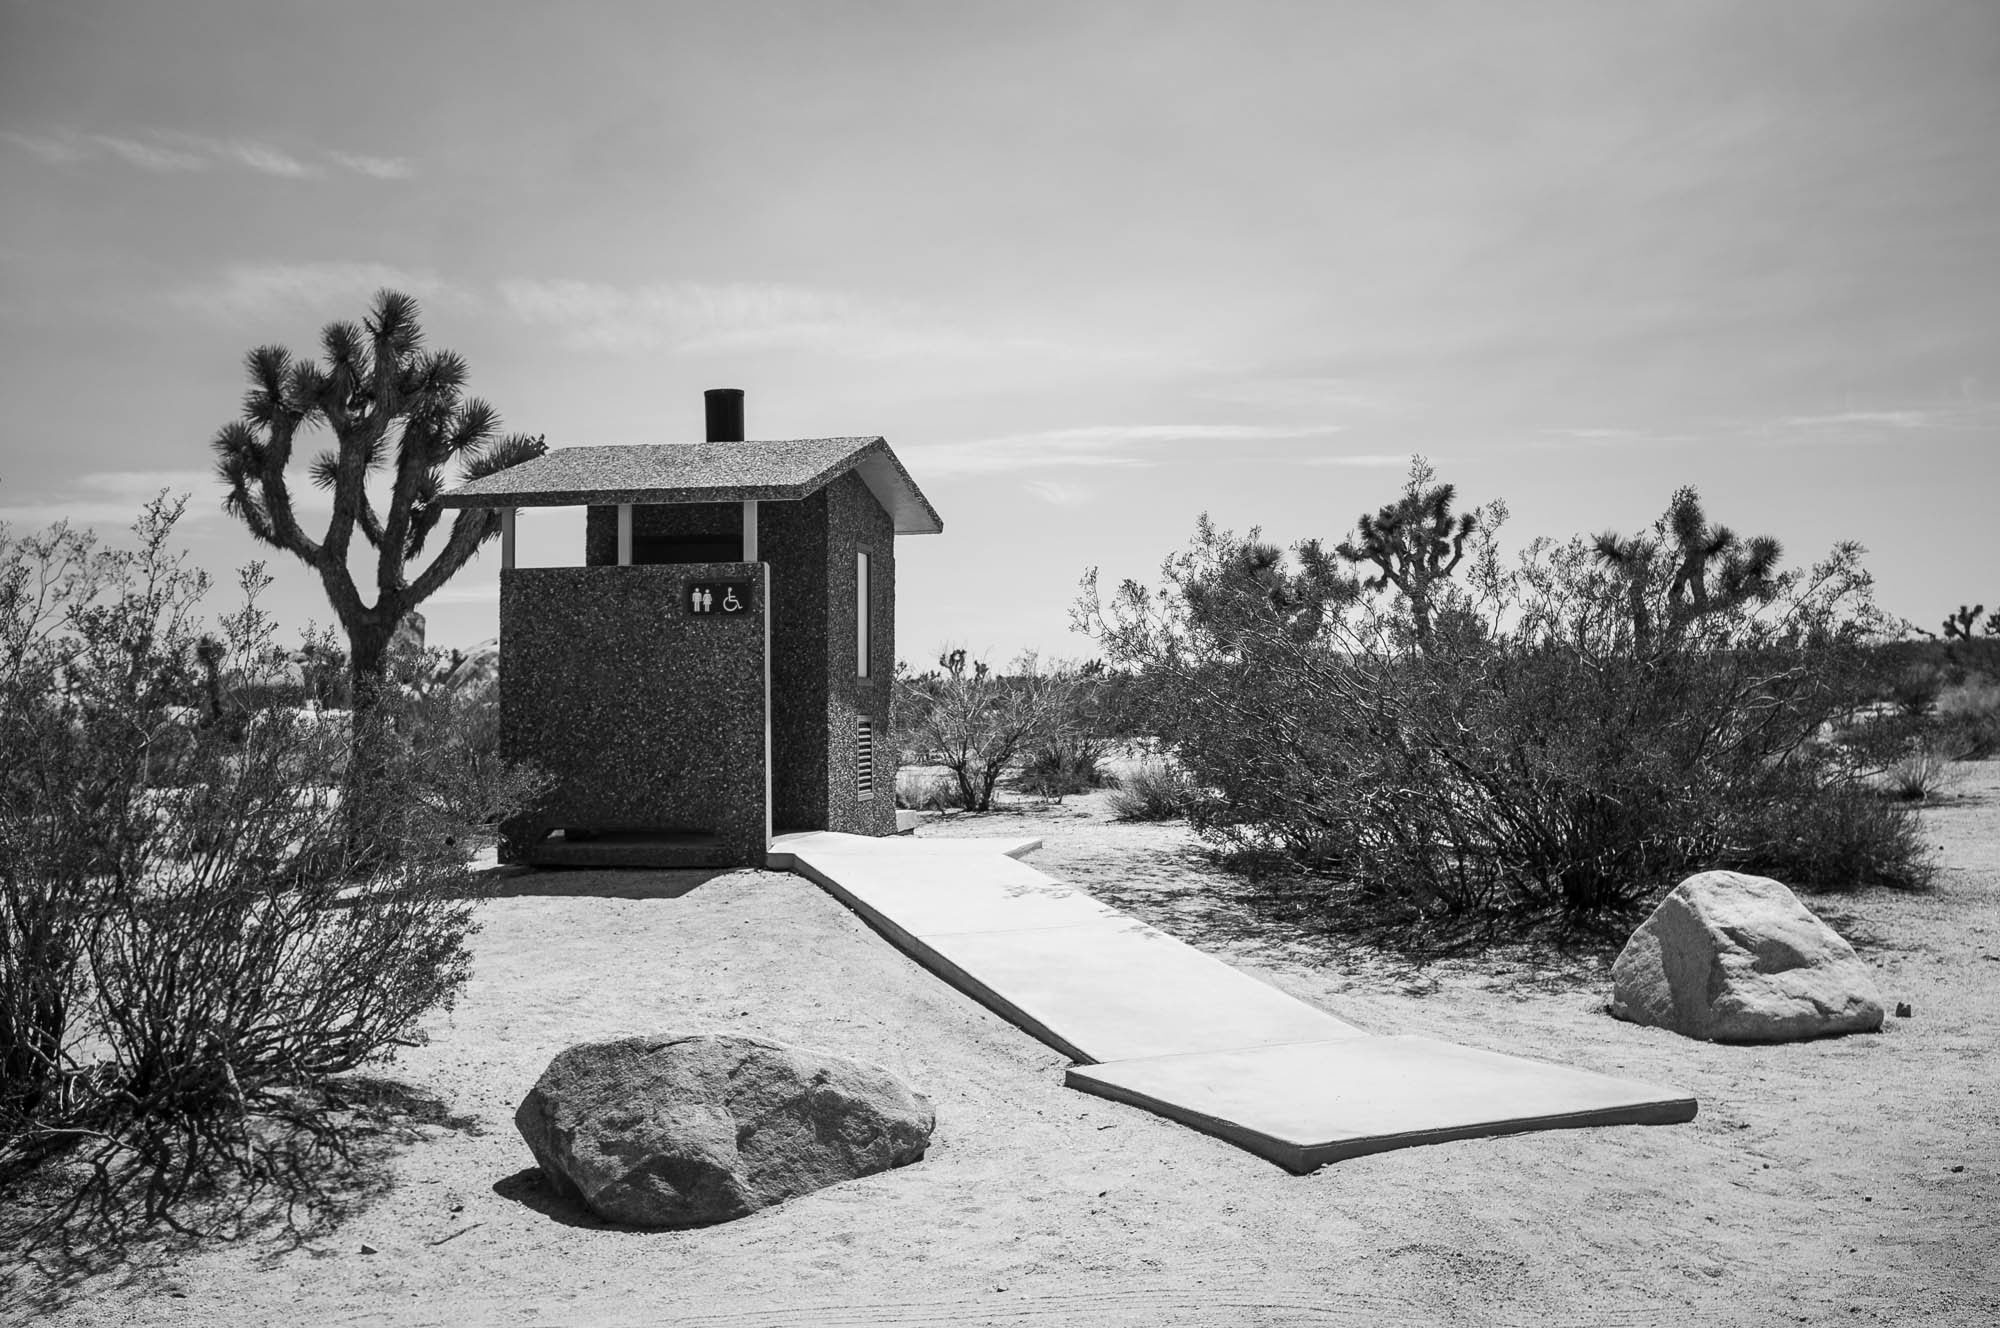 Studio-David-Fischer-Joshua-Tree-Toilet